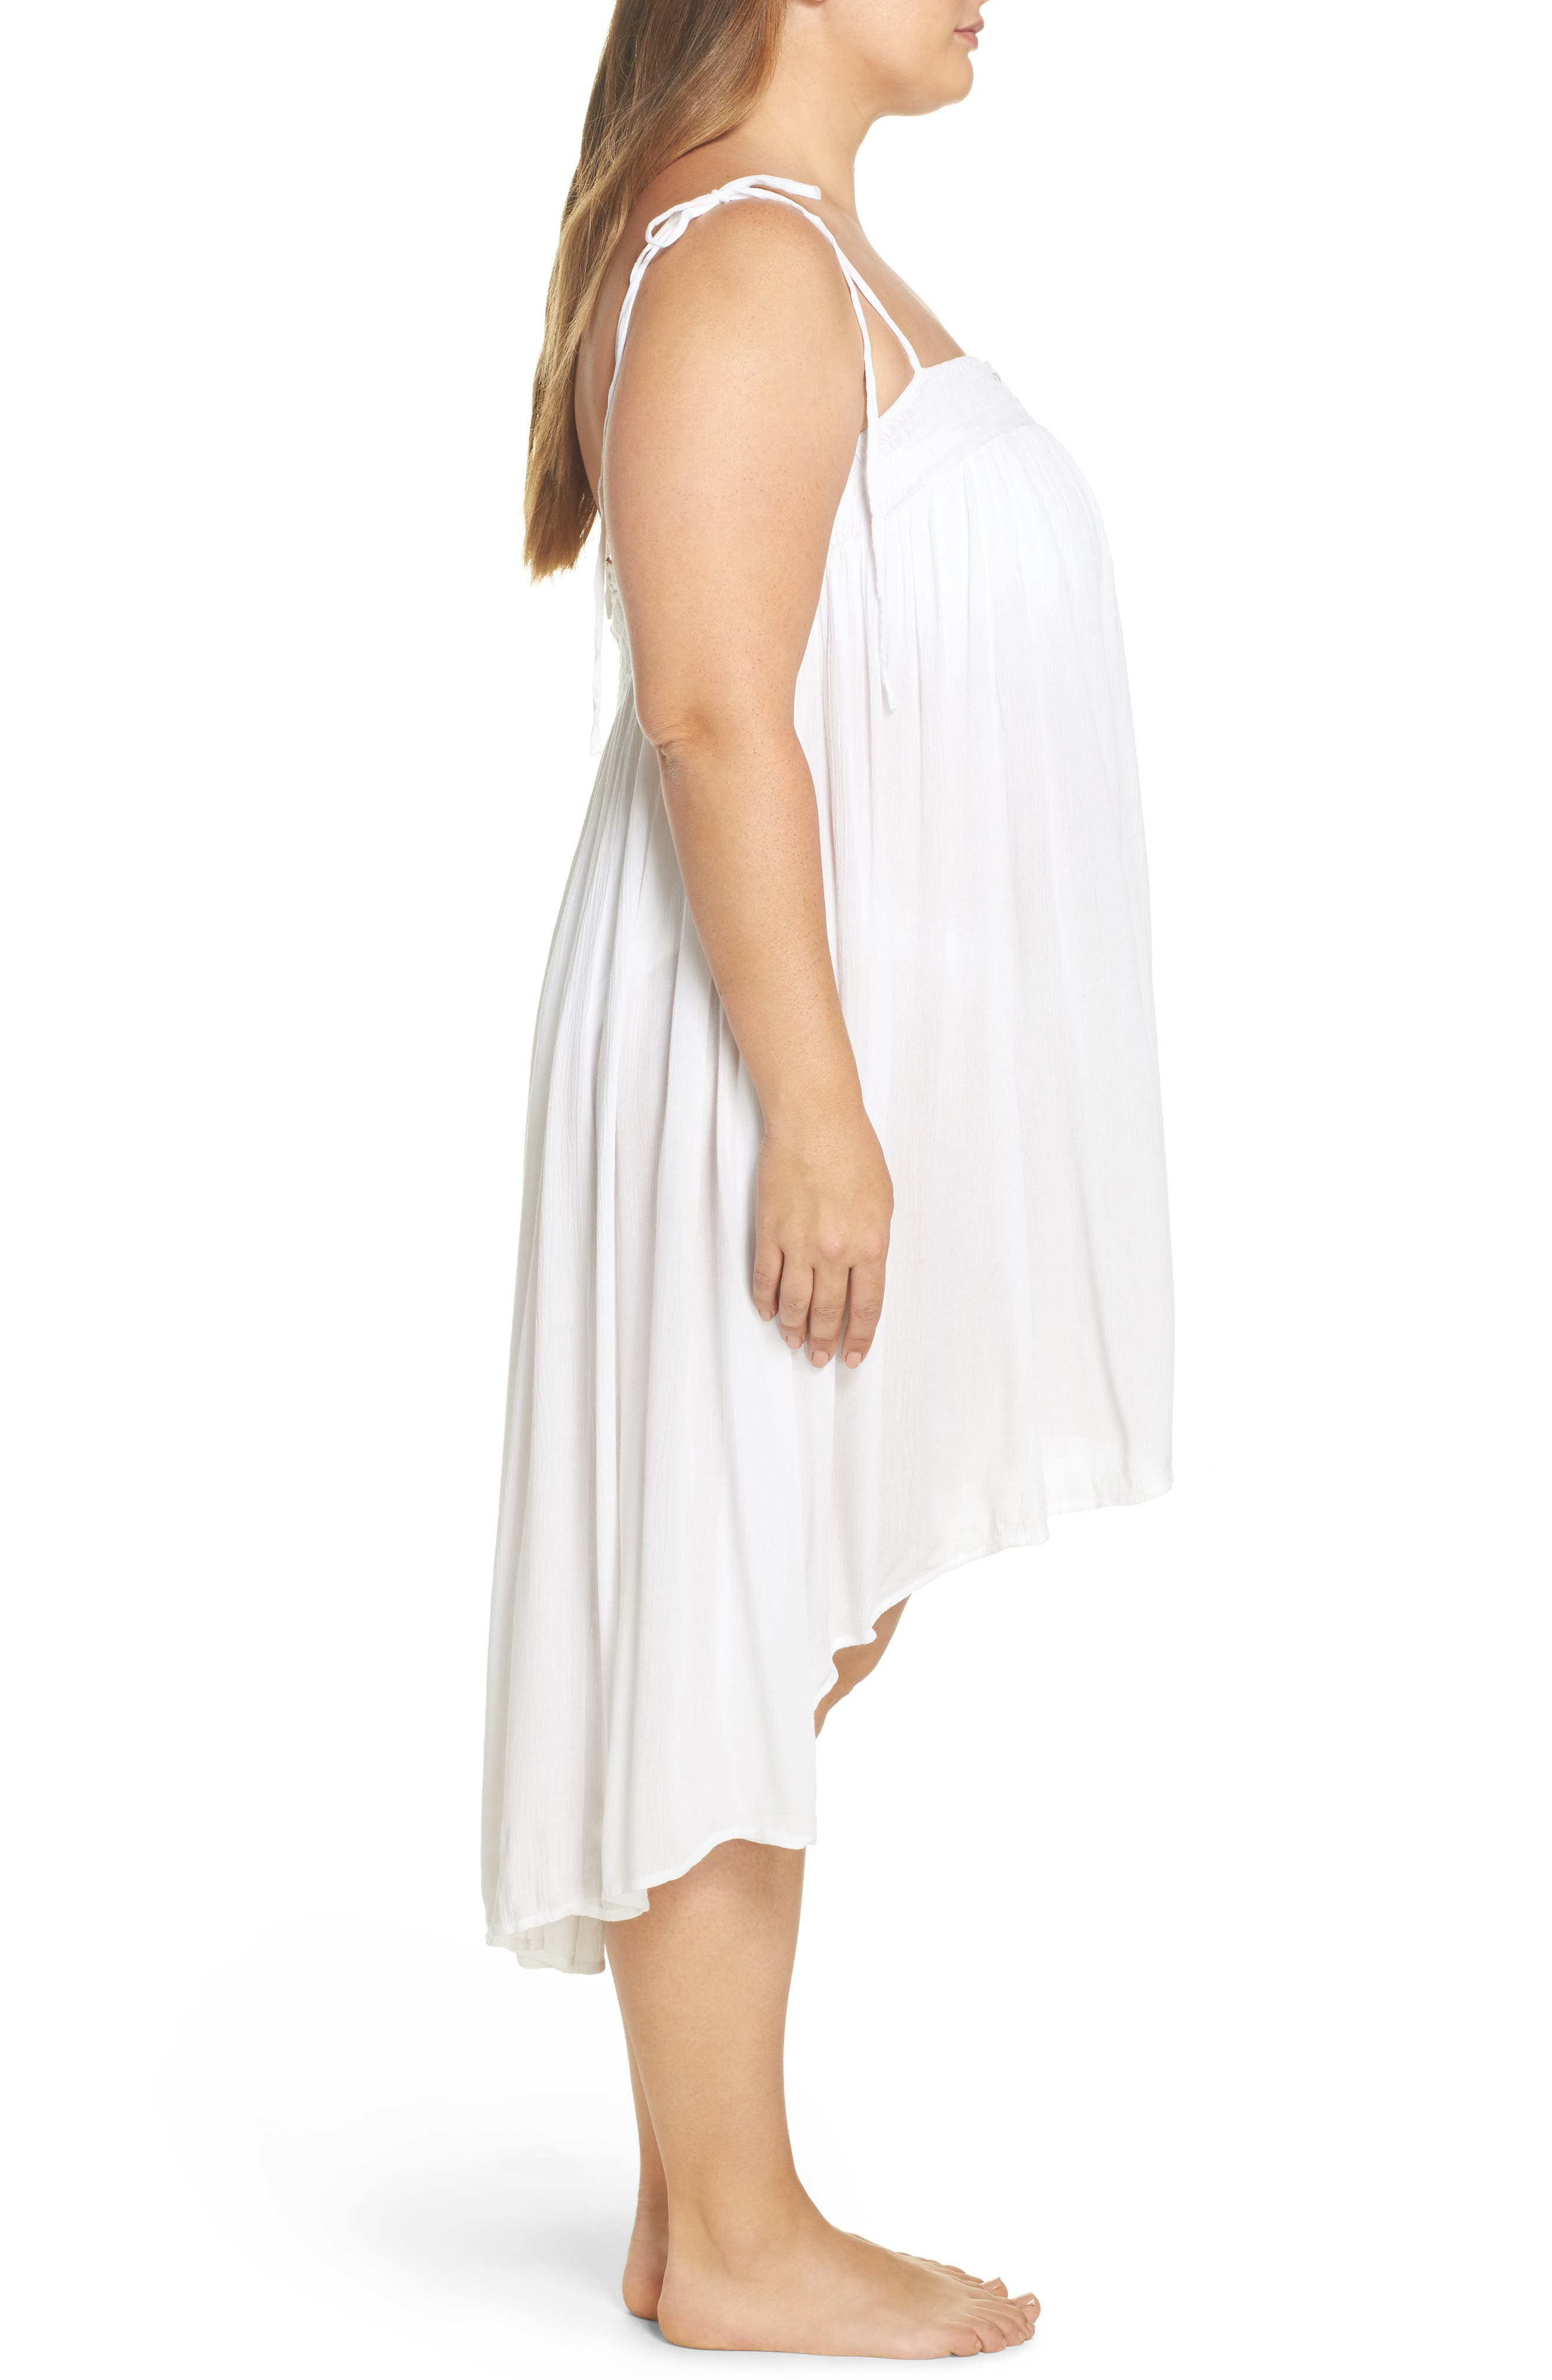 Oliva Cover-Up Dress,                             Alternate thumbnail 3, color,                             White